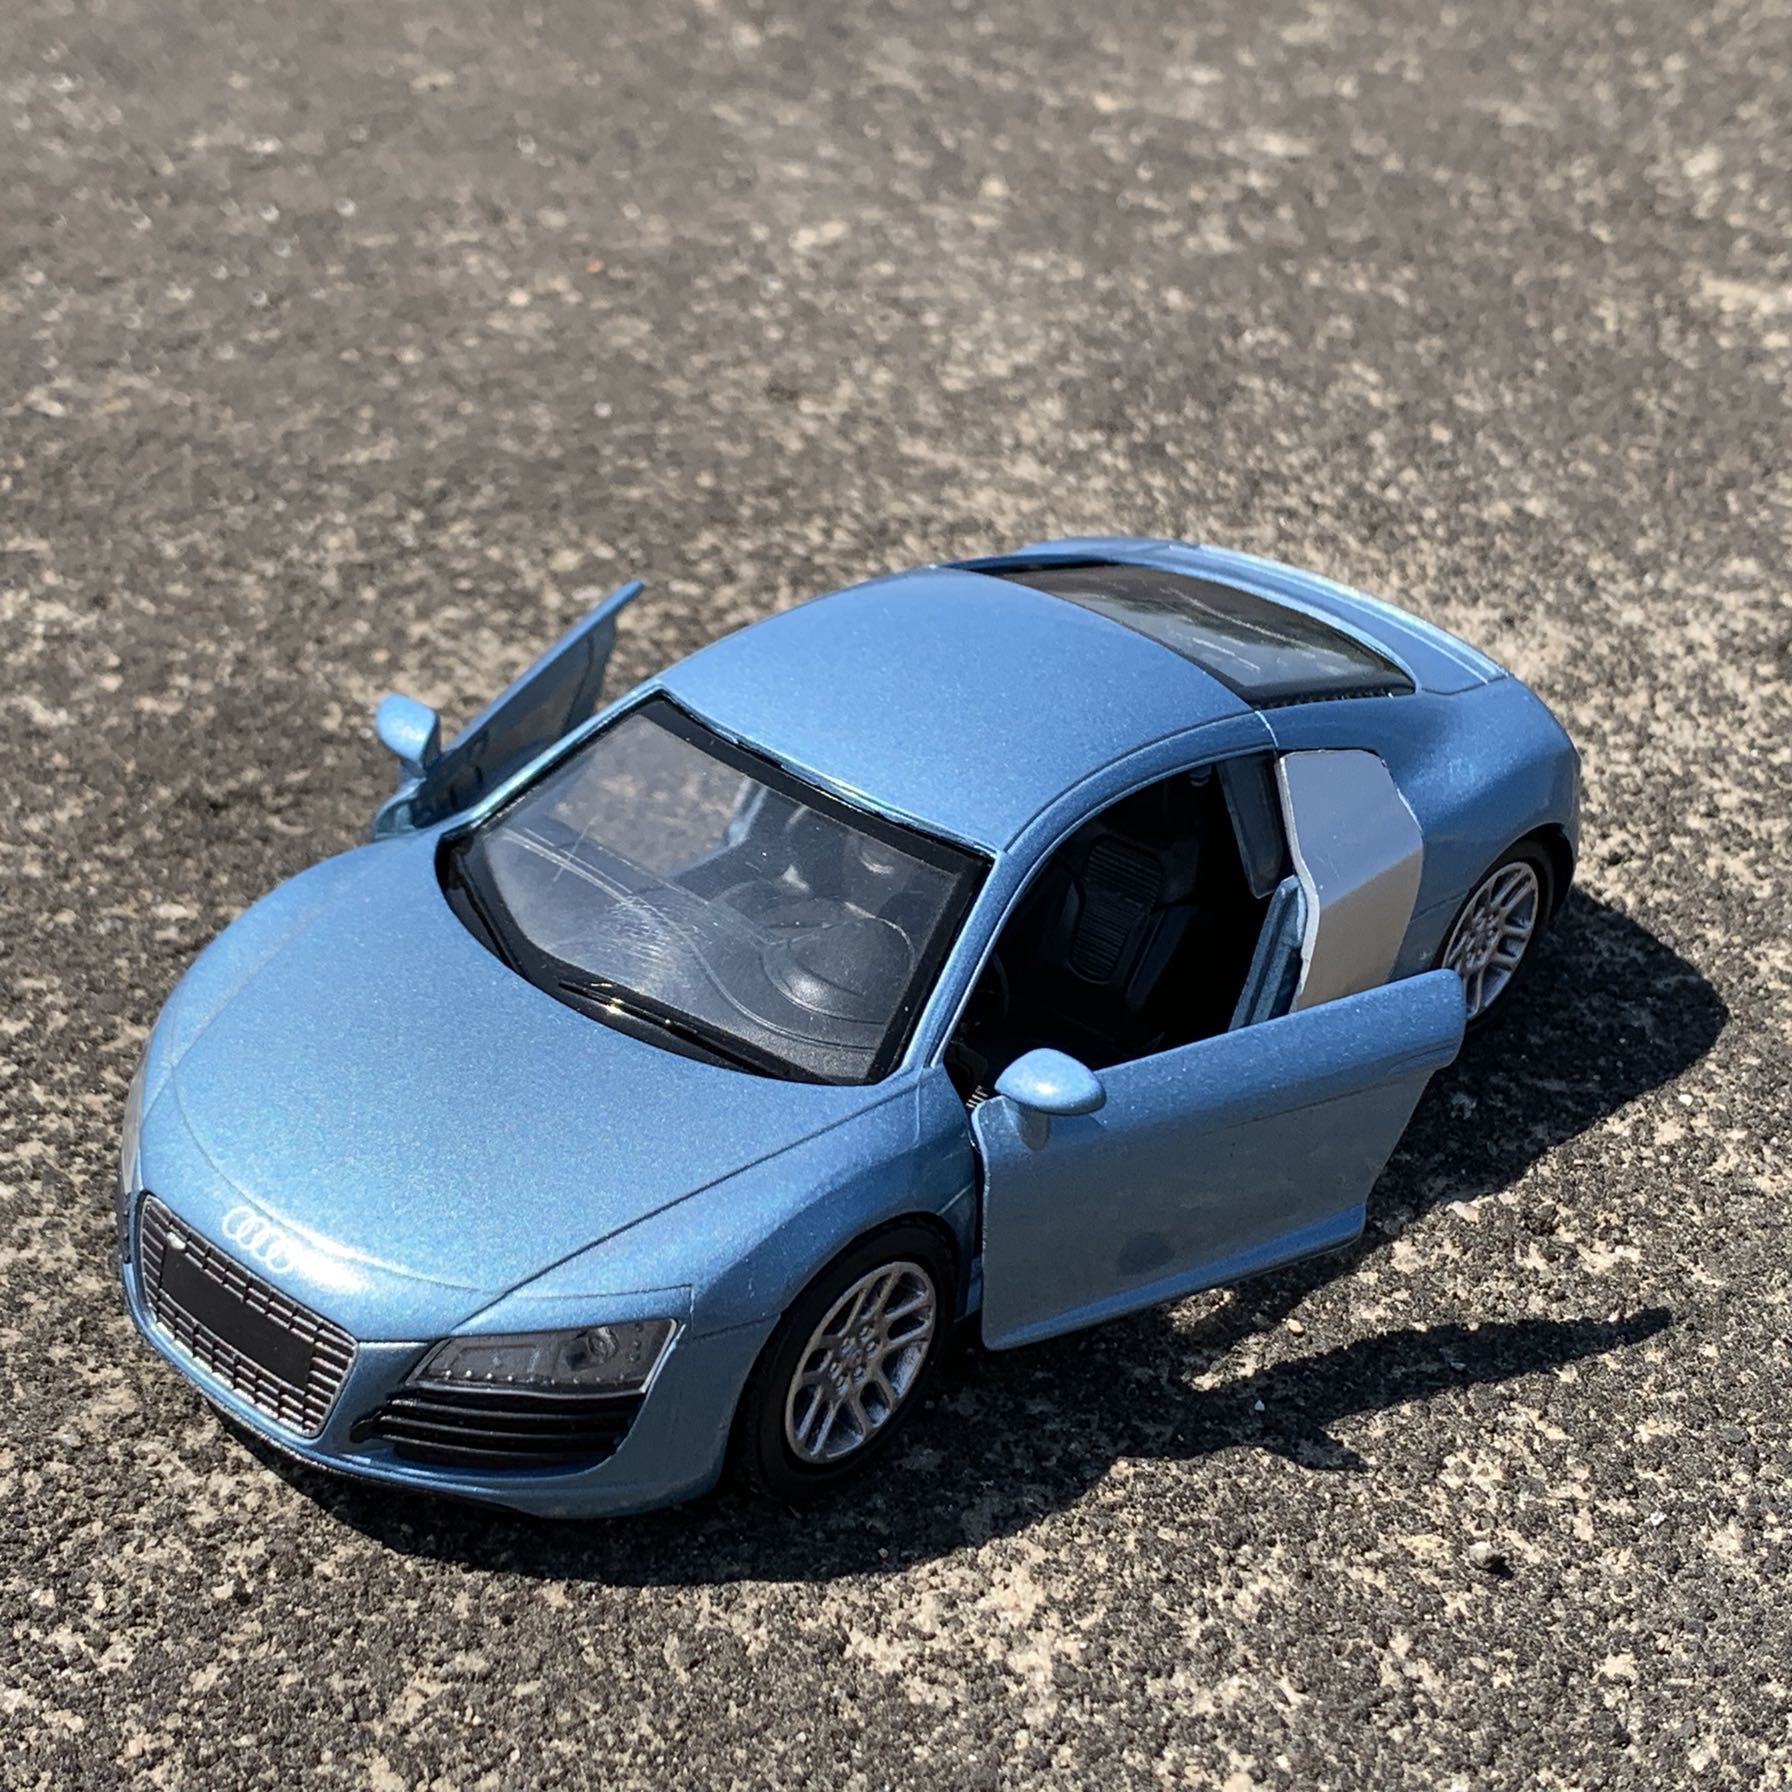 RD 1/32 Scale Car Model Toys AUDI R8 Diecast Metal 14CM Length Car Model Toy For Collection,Gift,Kids,Decoration image